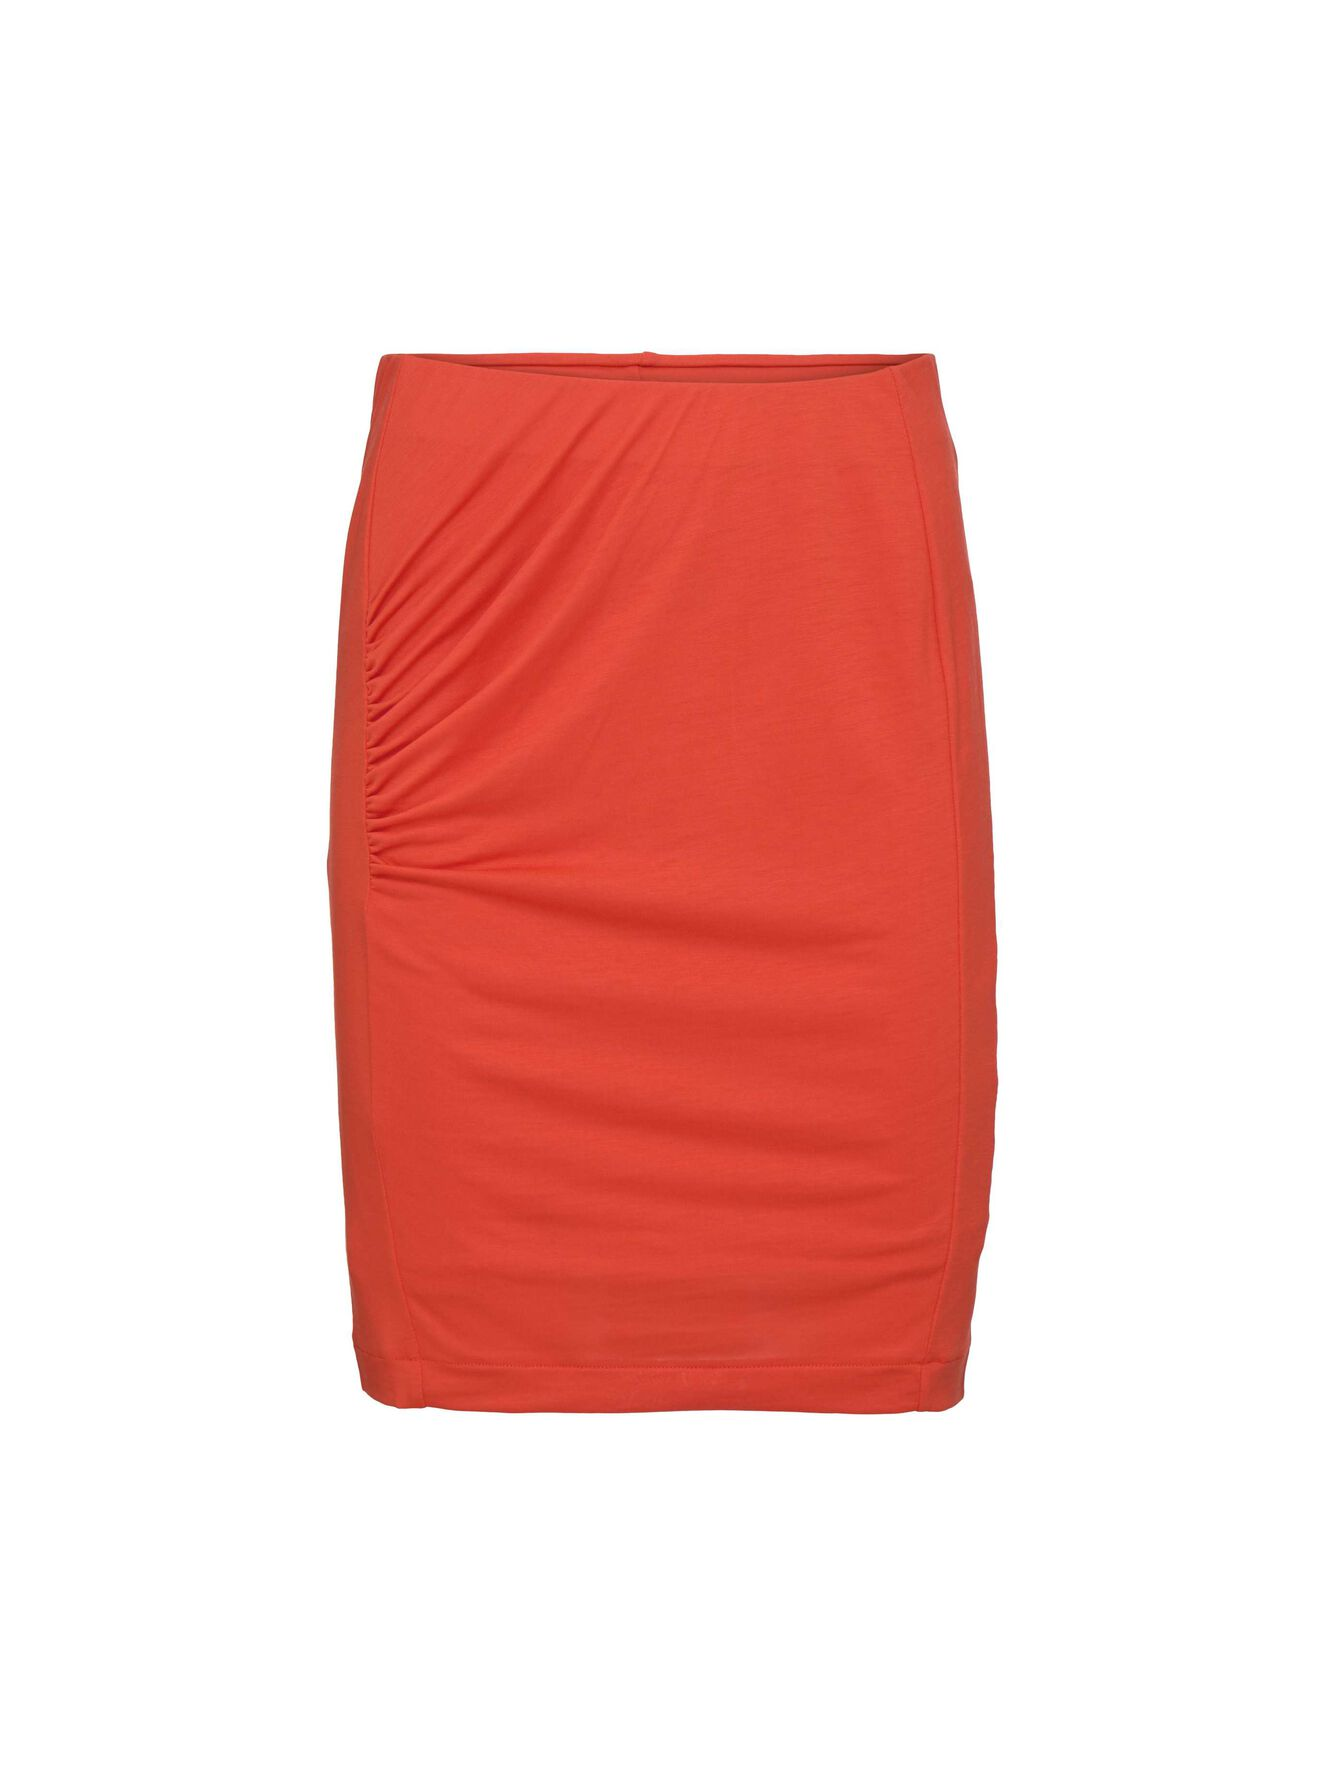 Anea Skirt in Flame Red from Tiger of Sweden